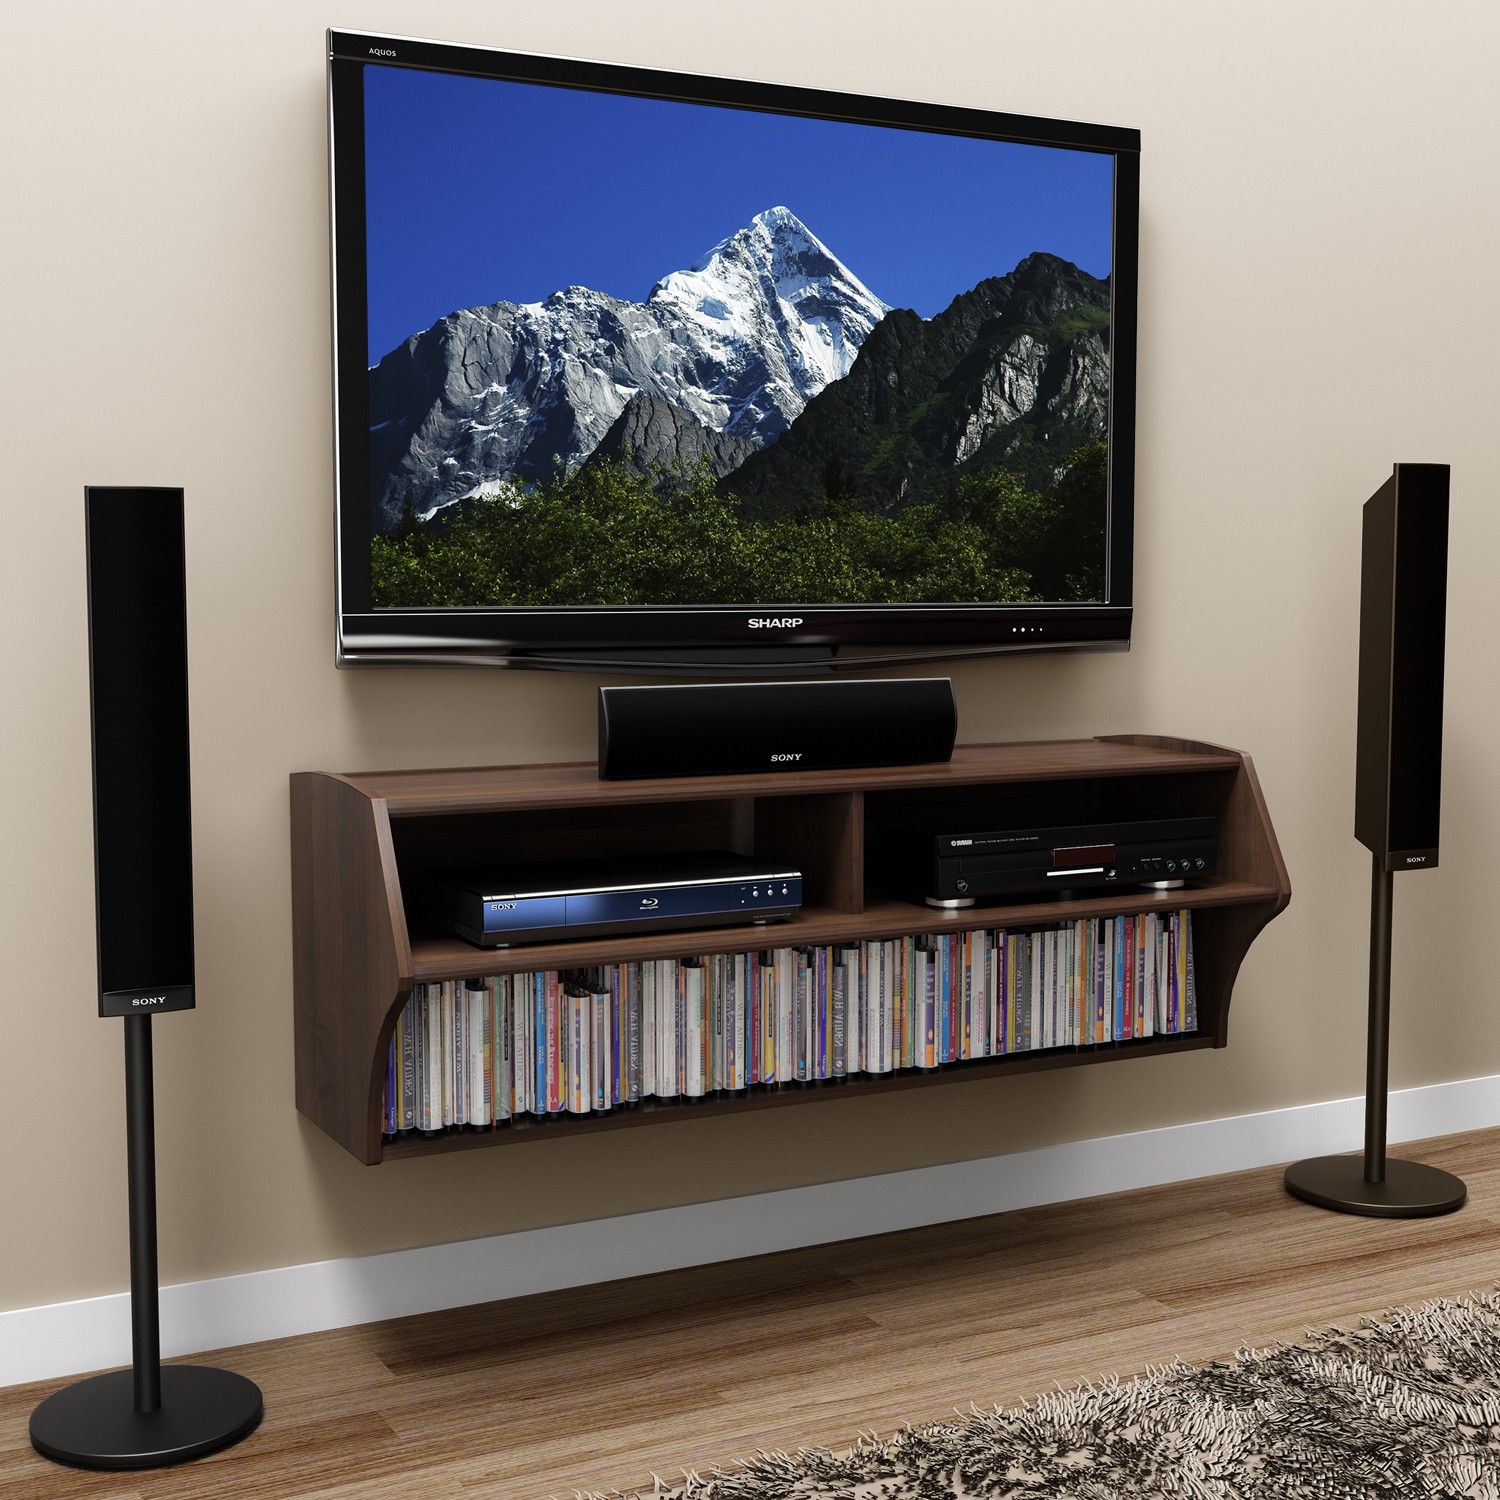 Interior Furniture Espresso Walnut Floating Tv Cabinet With Dvd ...